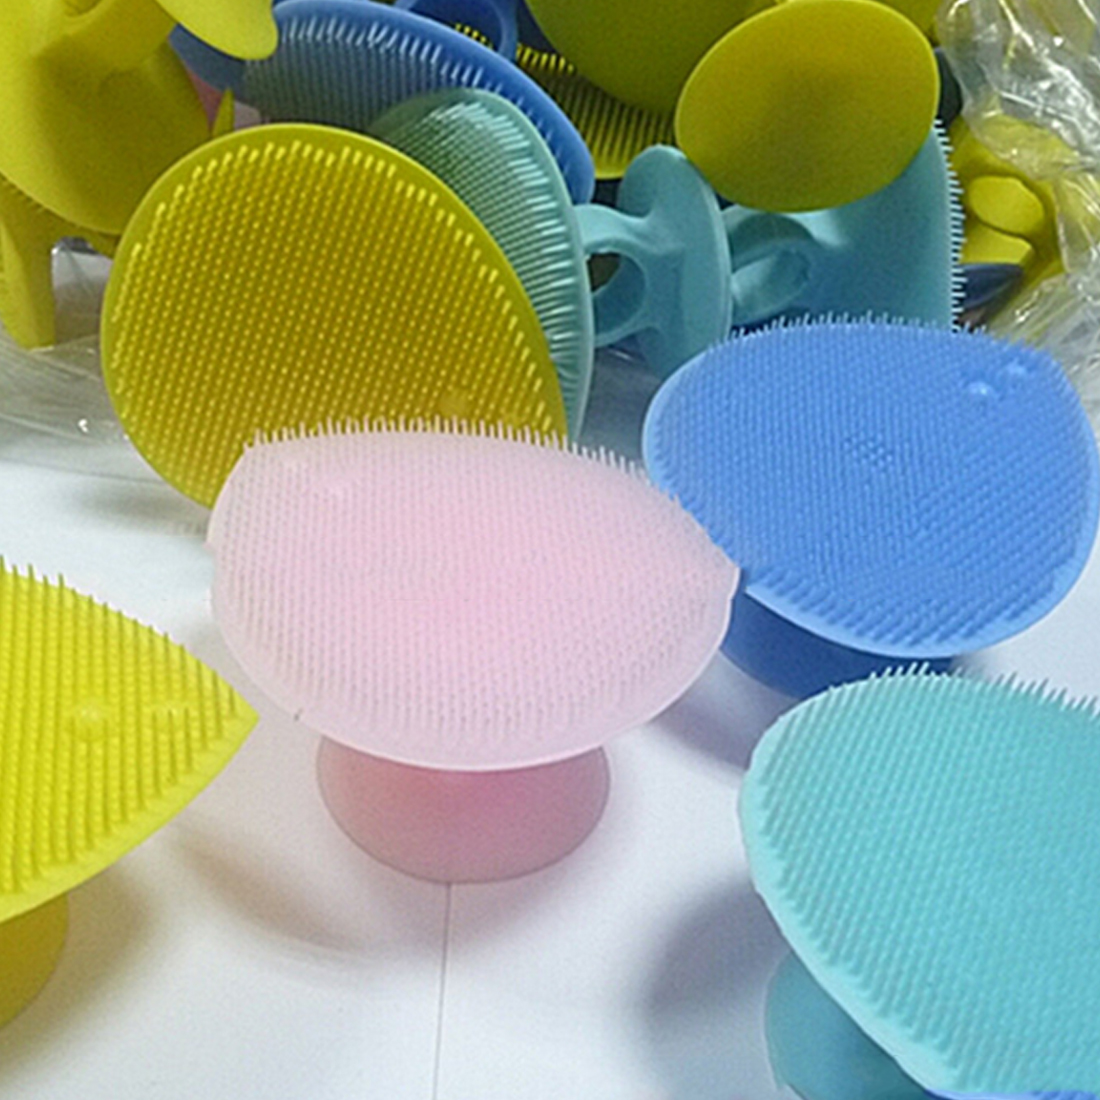 Hot 1PC Silicone Heart Shaped Face Washing Brush Facial Cleaning Pad Exfoliating SPA Skin Scrub Random Color